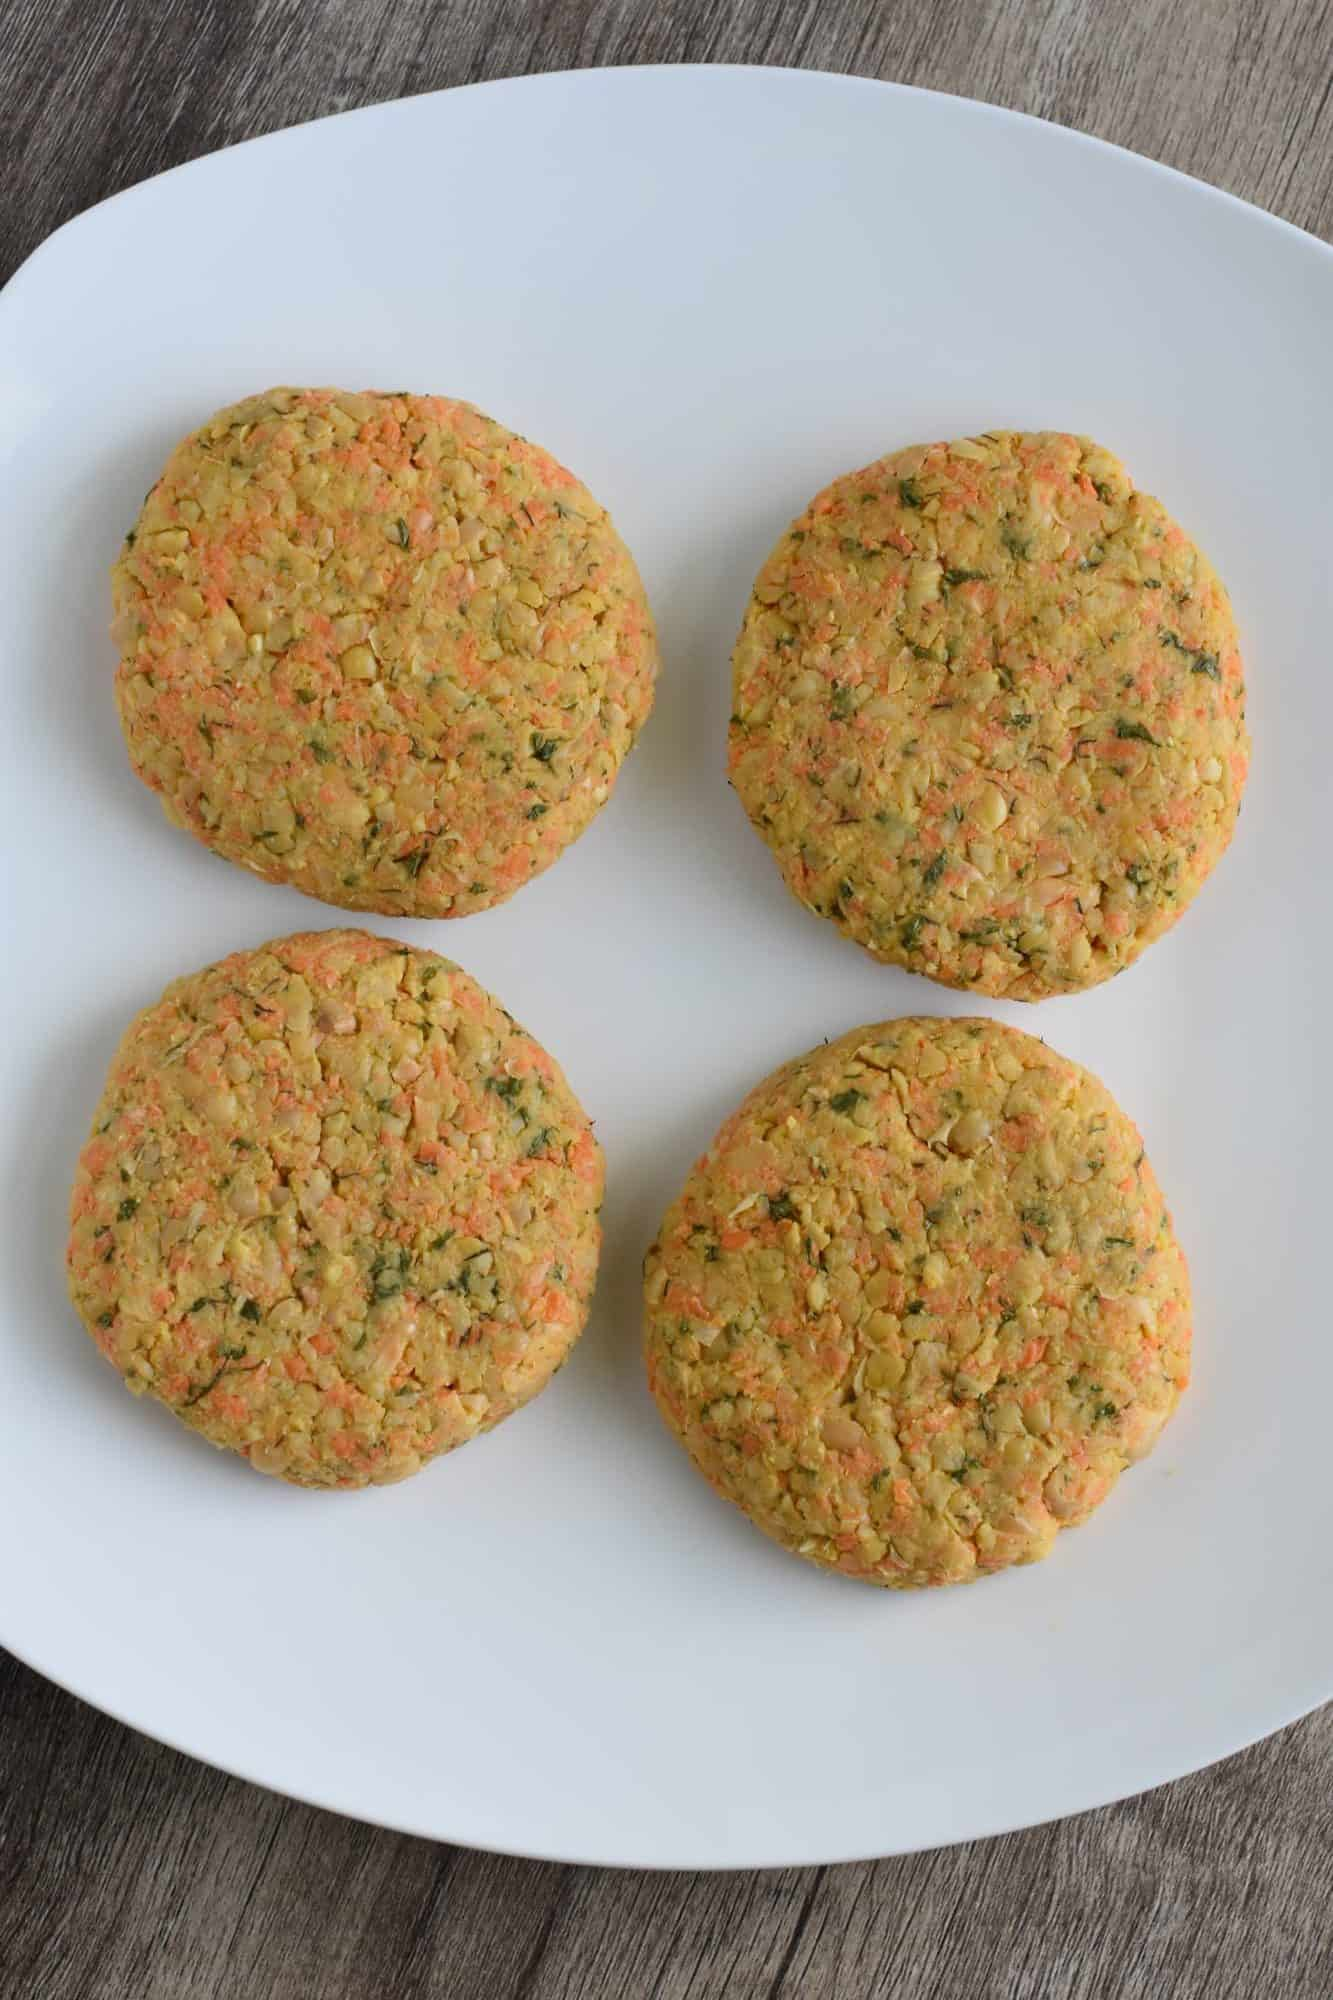 4 uncooked chickpea patties on plate